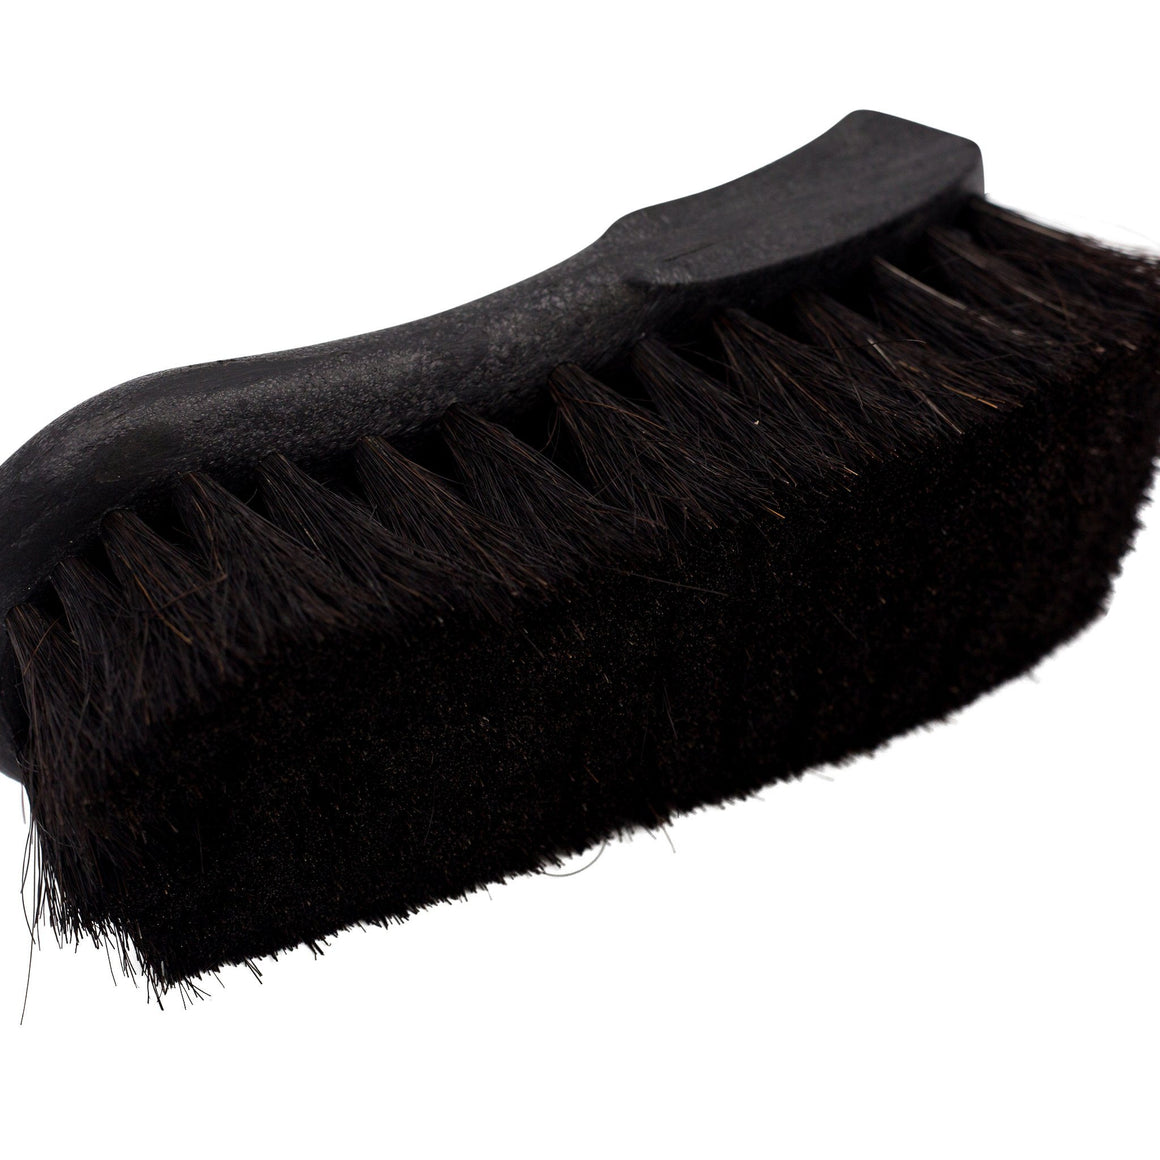 Wheel Woolies Horse Hair Leather Brush